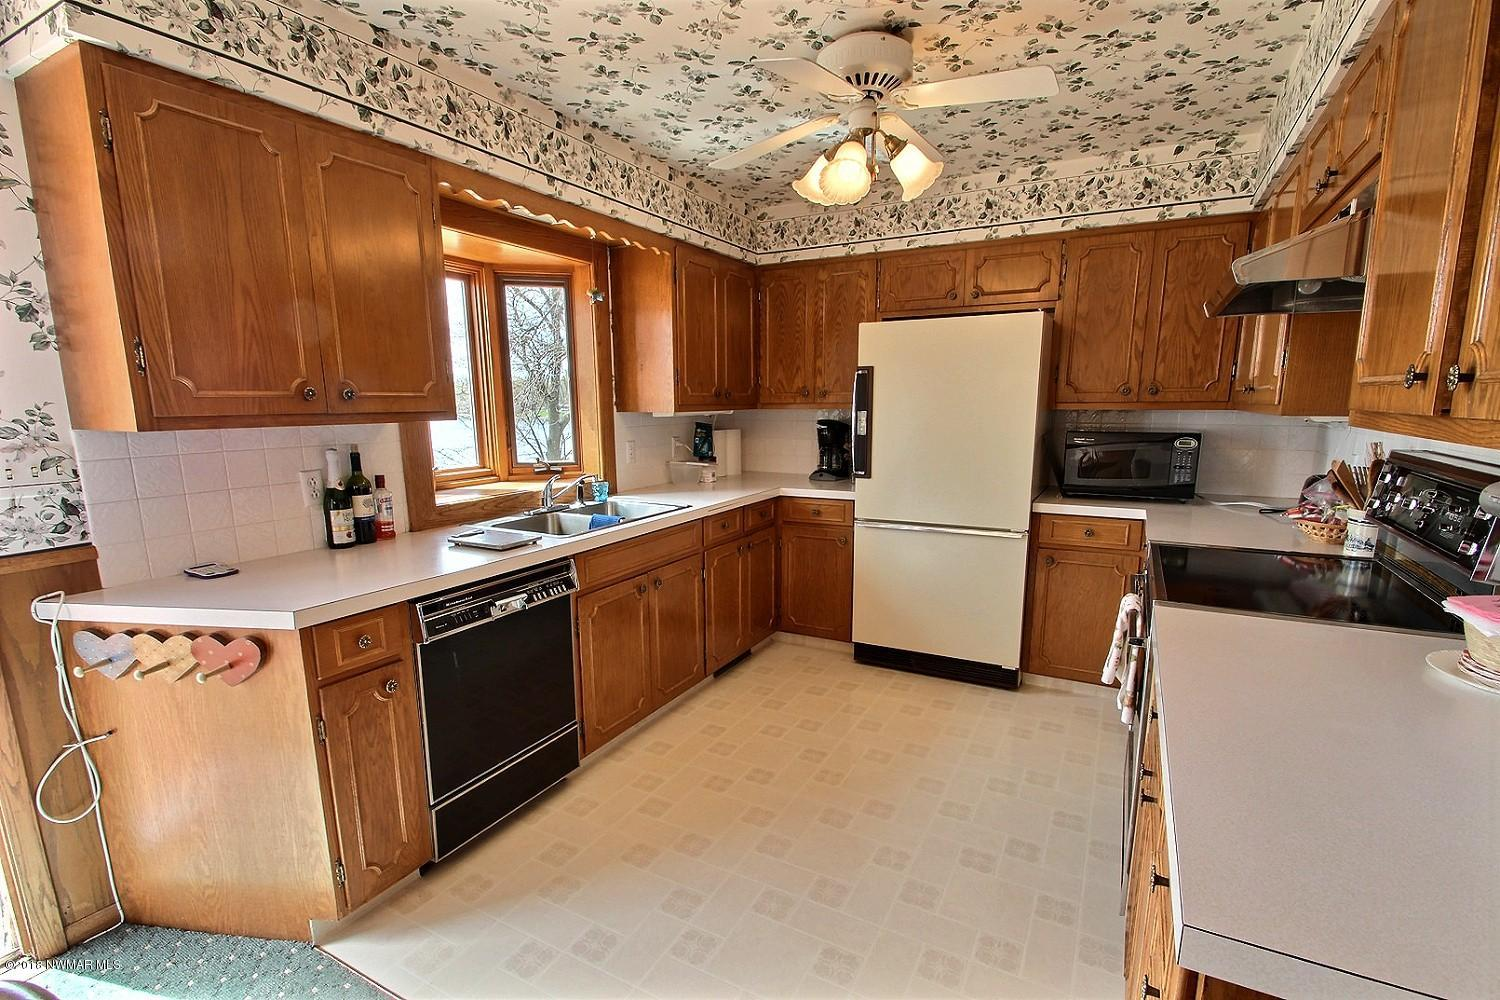 View of the kitchen including dishwasher, stove, fridge, tons of cabinet and counter space, bay window and ceiling fan. There is plenty of space here for entertaining!